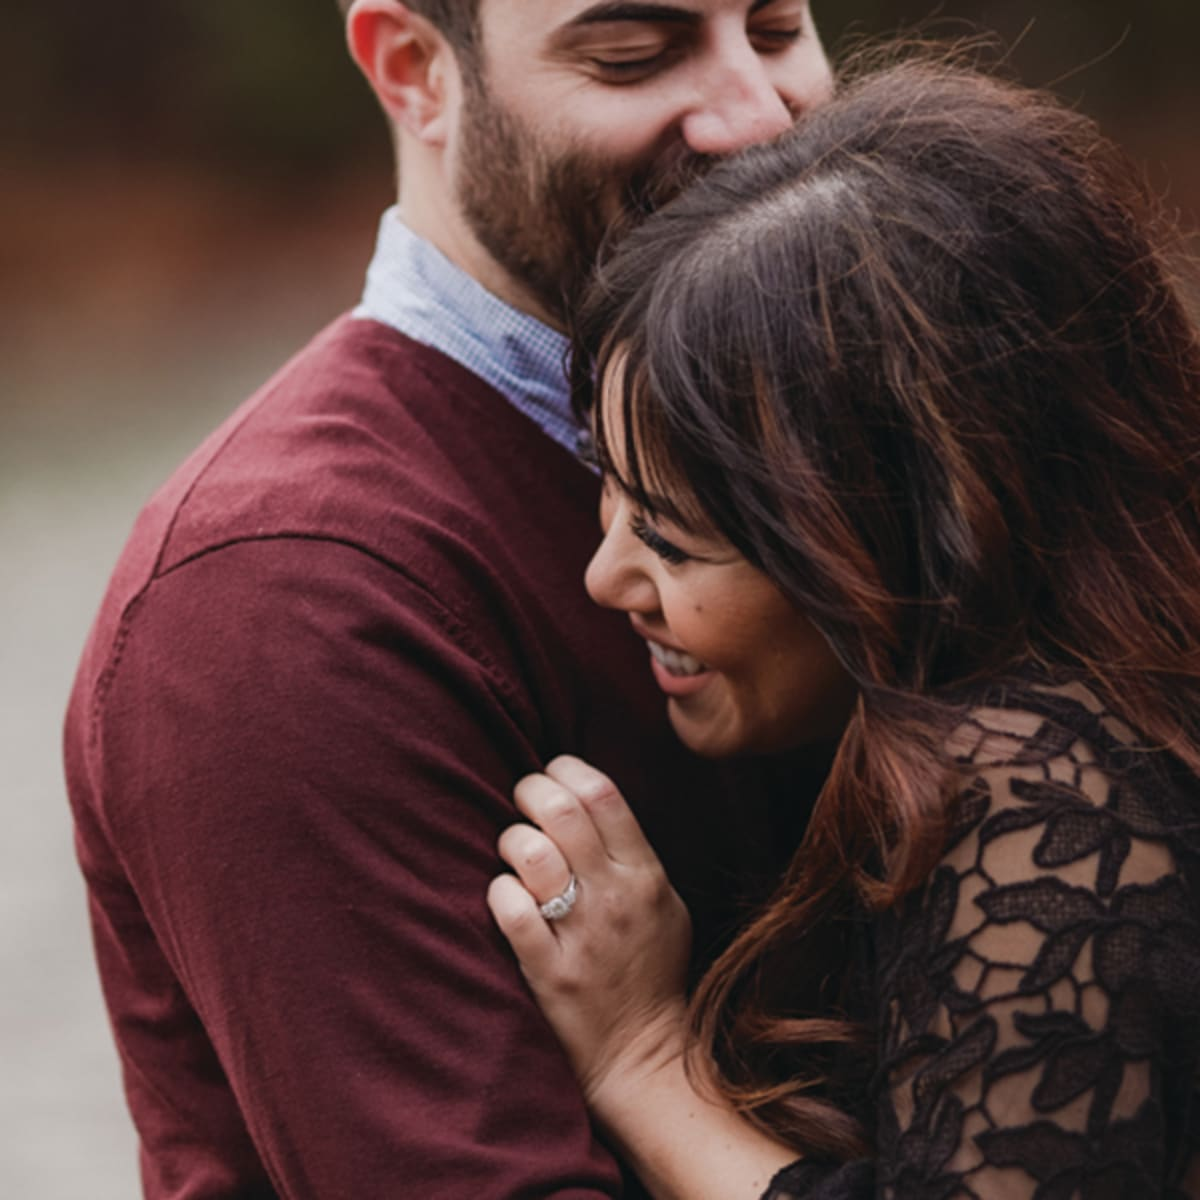 20 Engagement Gift Ideas For Your Guy Based On The 5 Love Languages Verily